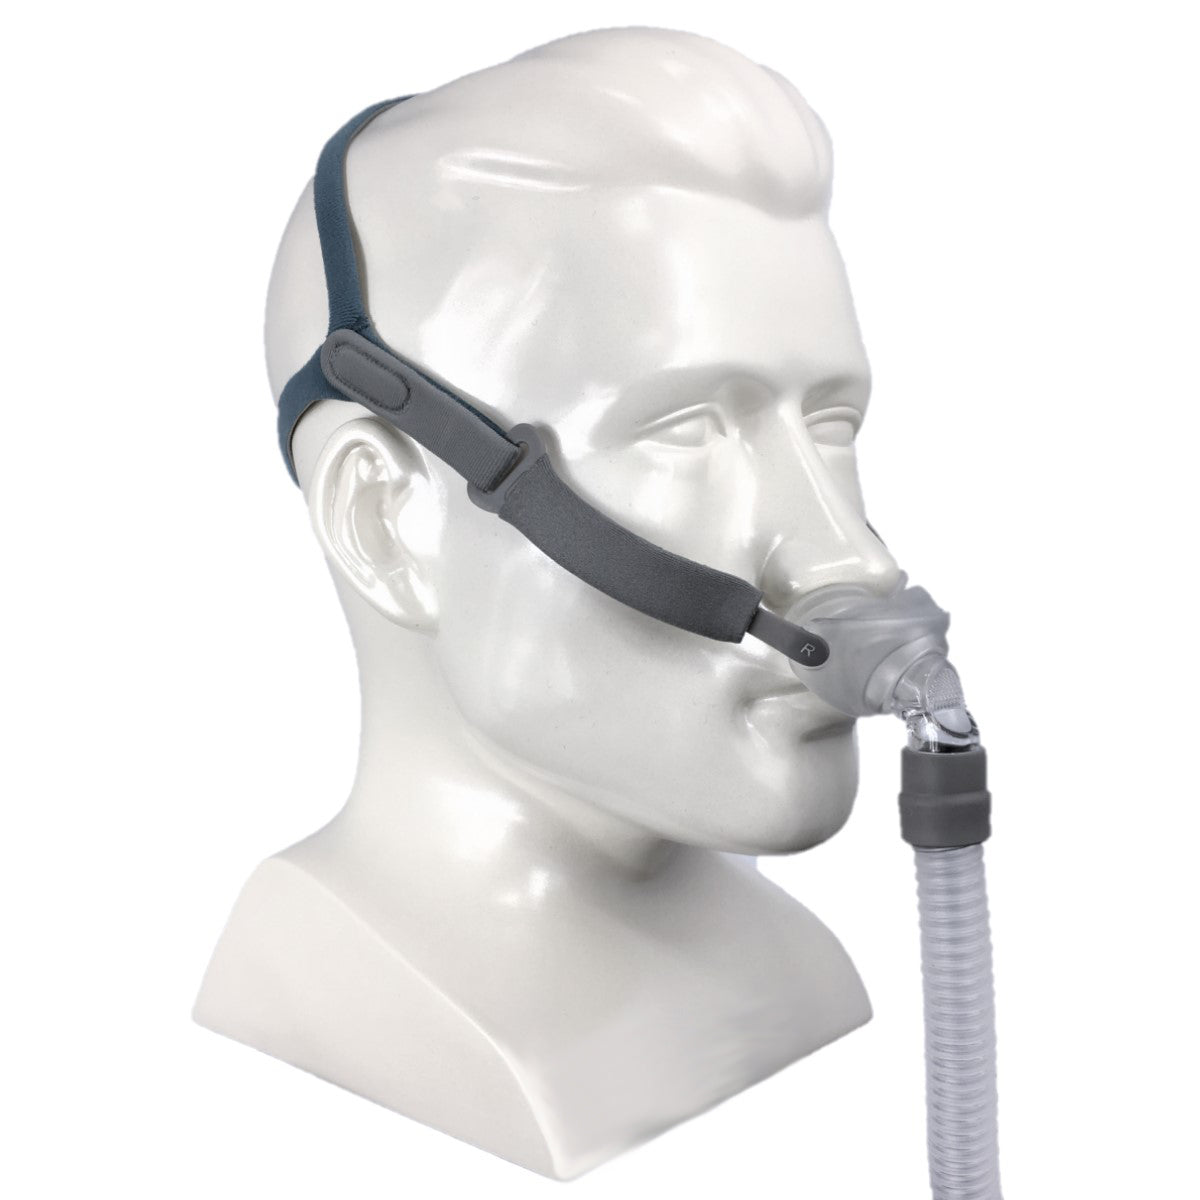 Mannequin with Rio 2 Nasal Pillow System Mask With Headgear by 3B Medical.